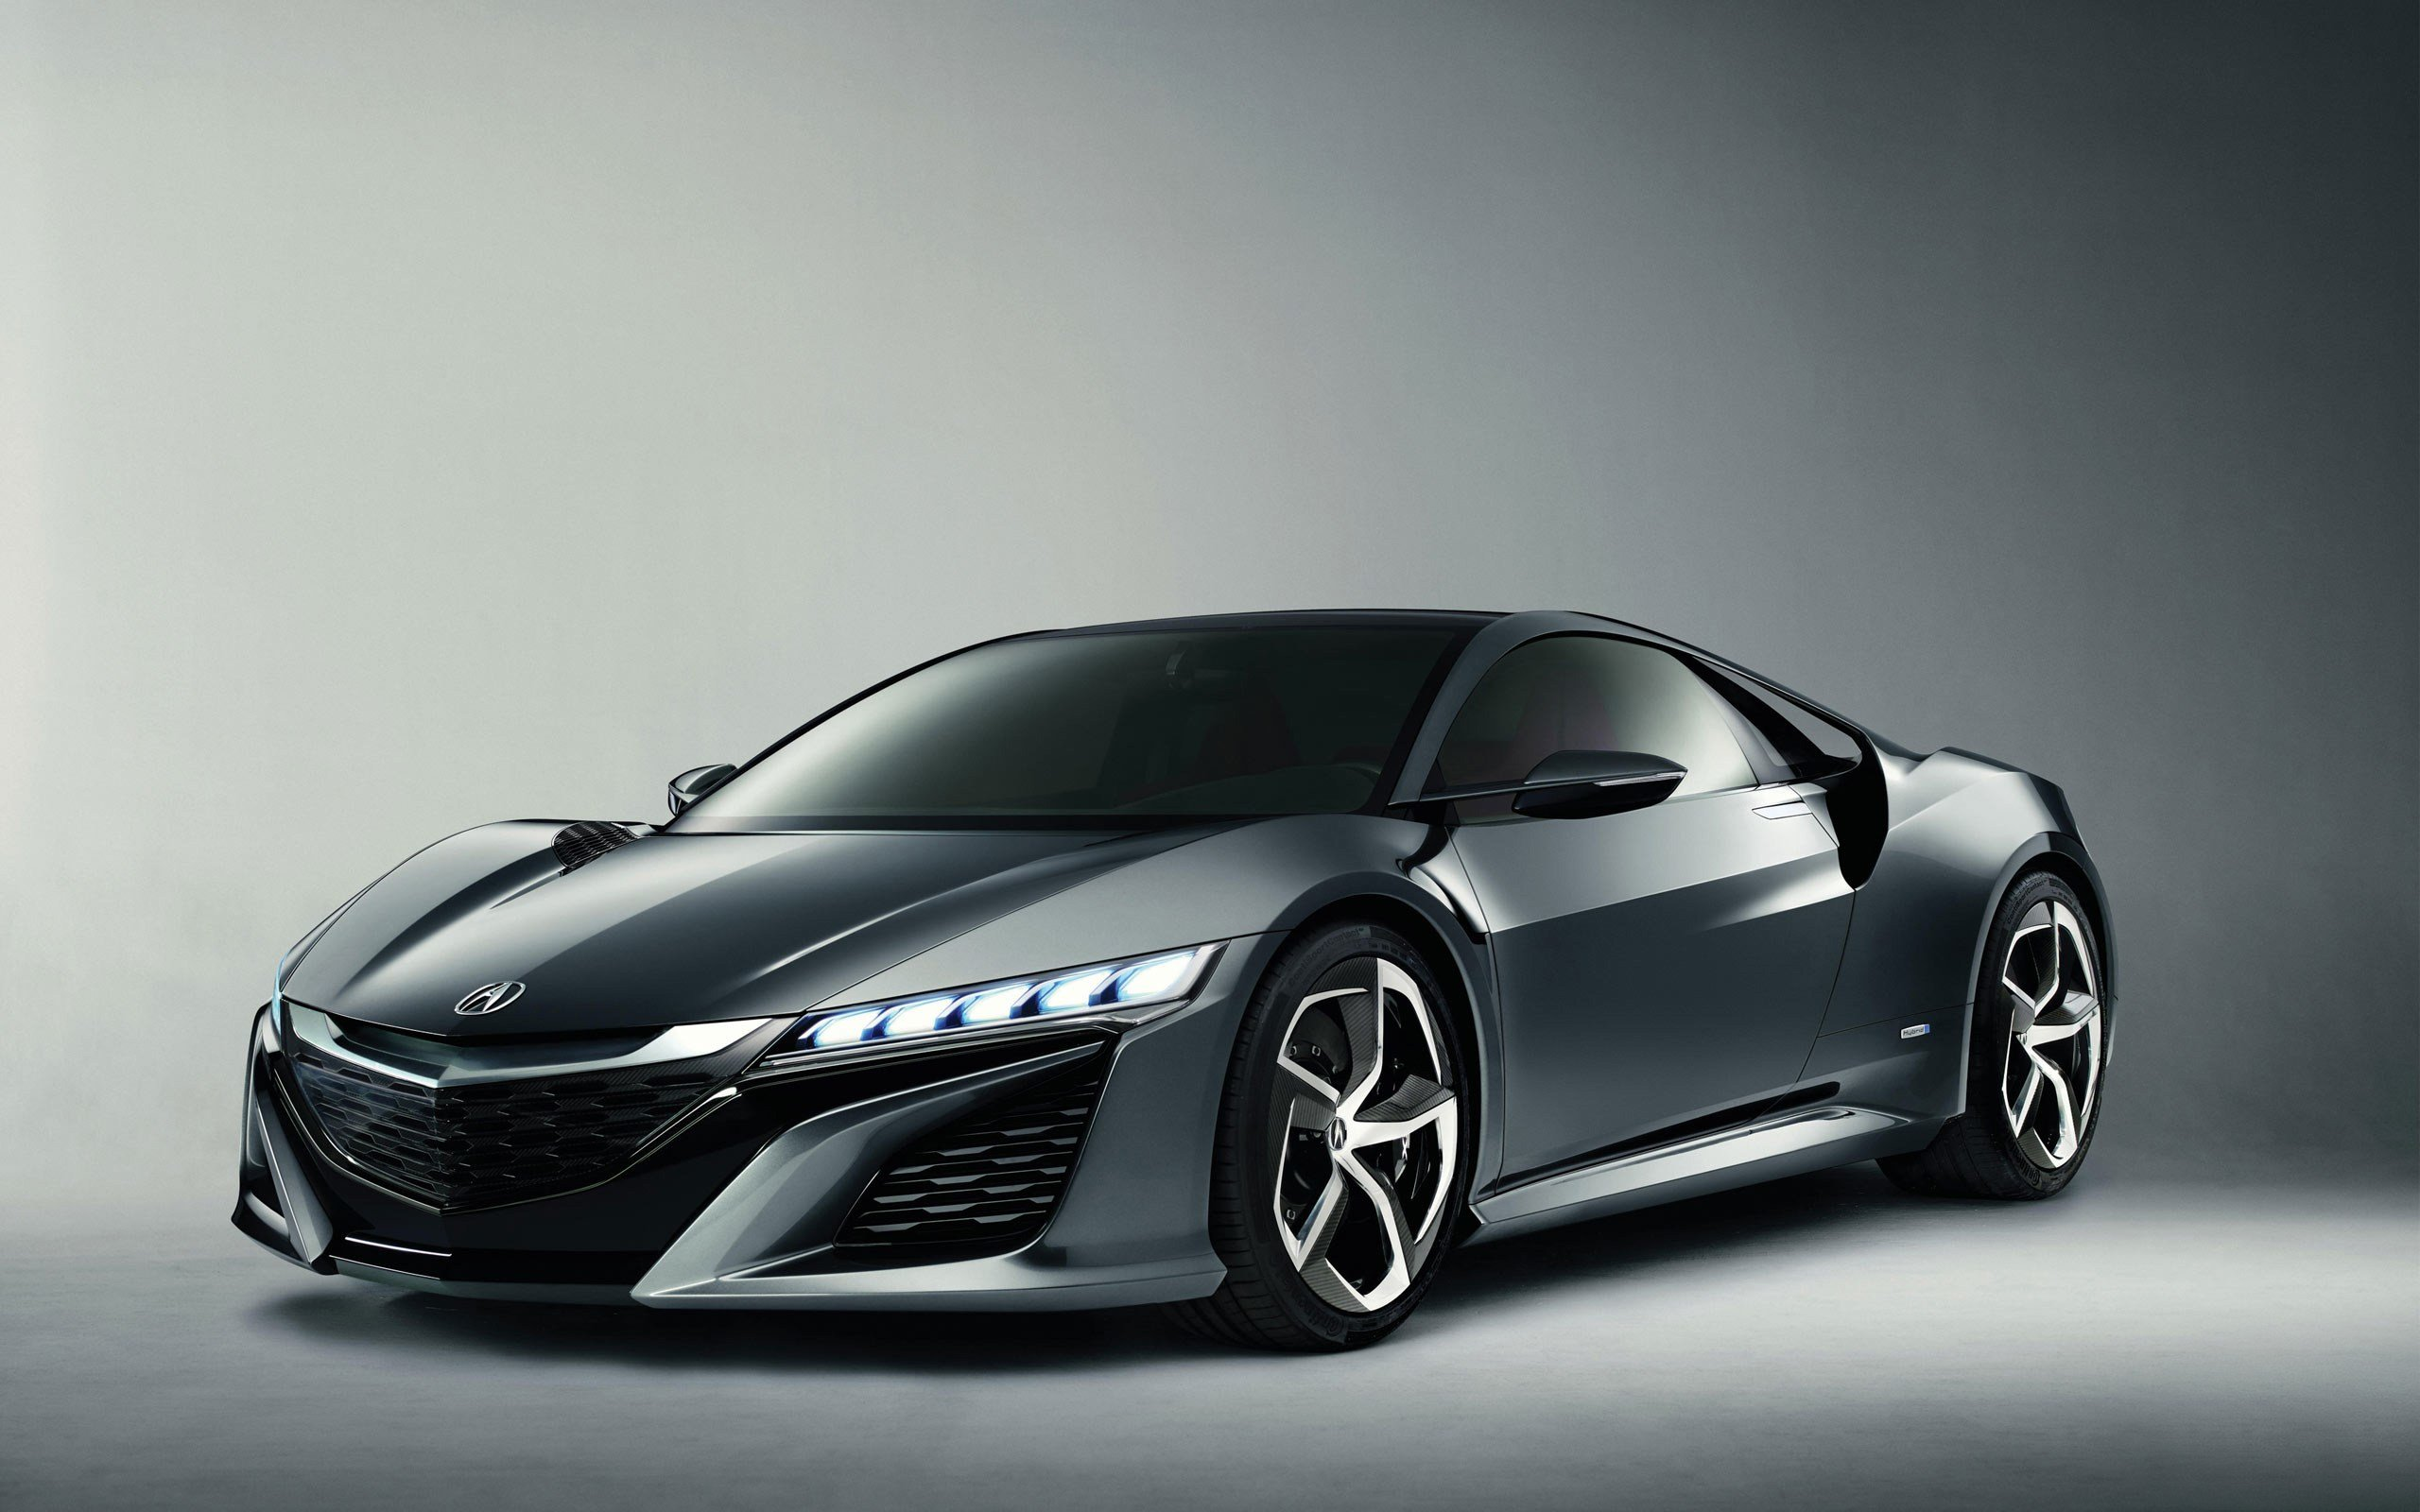 Latest 2013 Acura Nsx Concept Car Wallpaper Hd Car Wallpapers Free Download